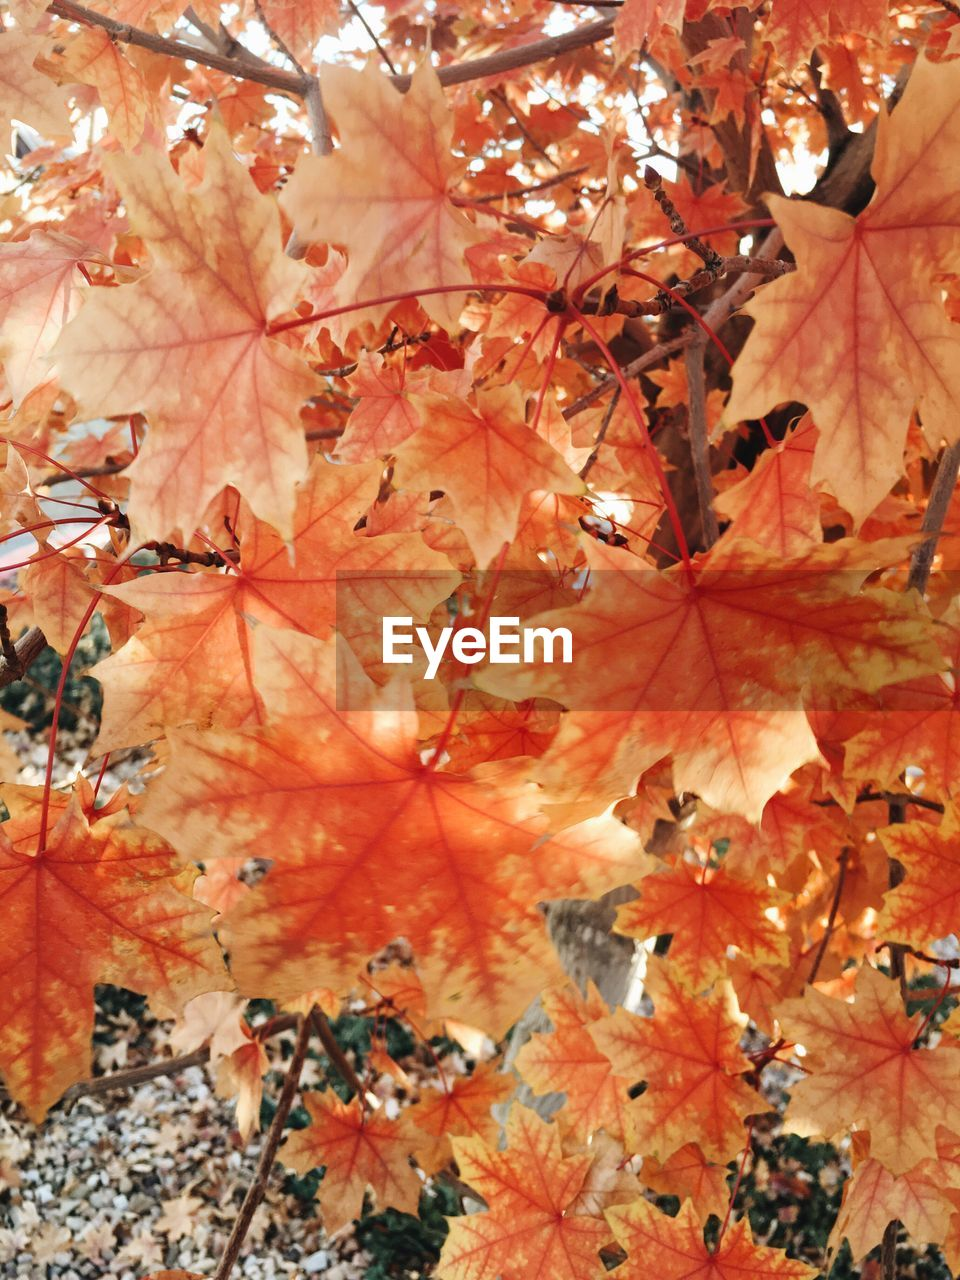 autumn, change, leaf, leaves, maple leaf, nature, maple, beauty in nature, maple tree, outdoors, day, abundance, full frame, no people, close-up, tree, branch, backgrounds, scenics, tranquility, growth, fragility